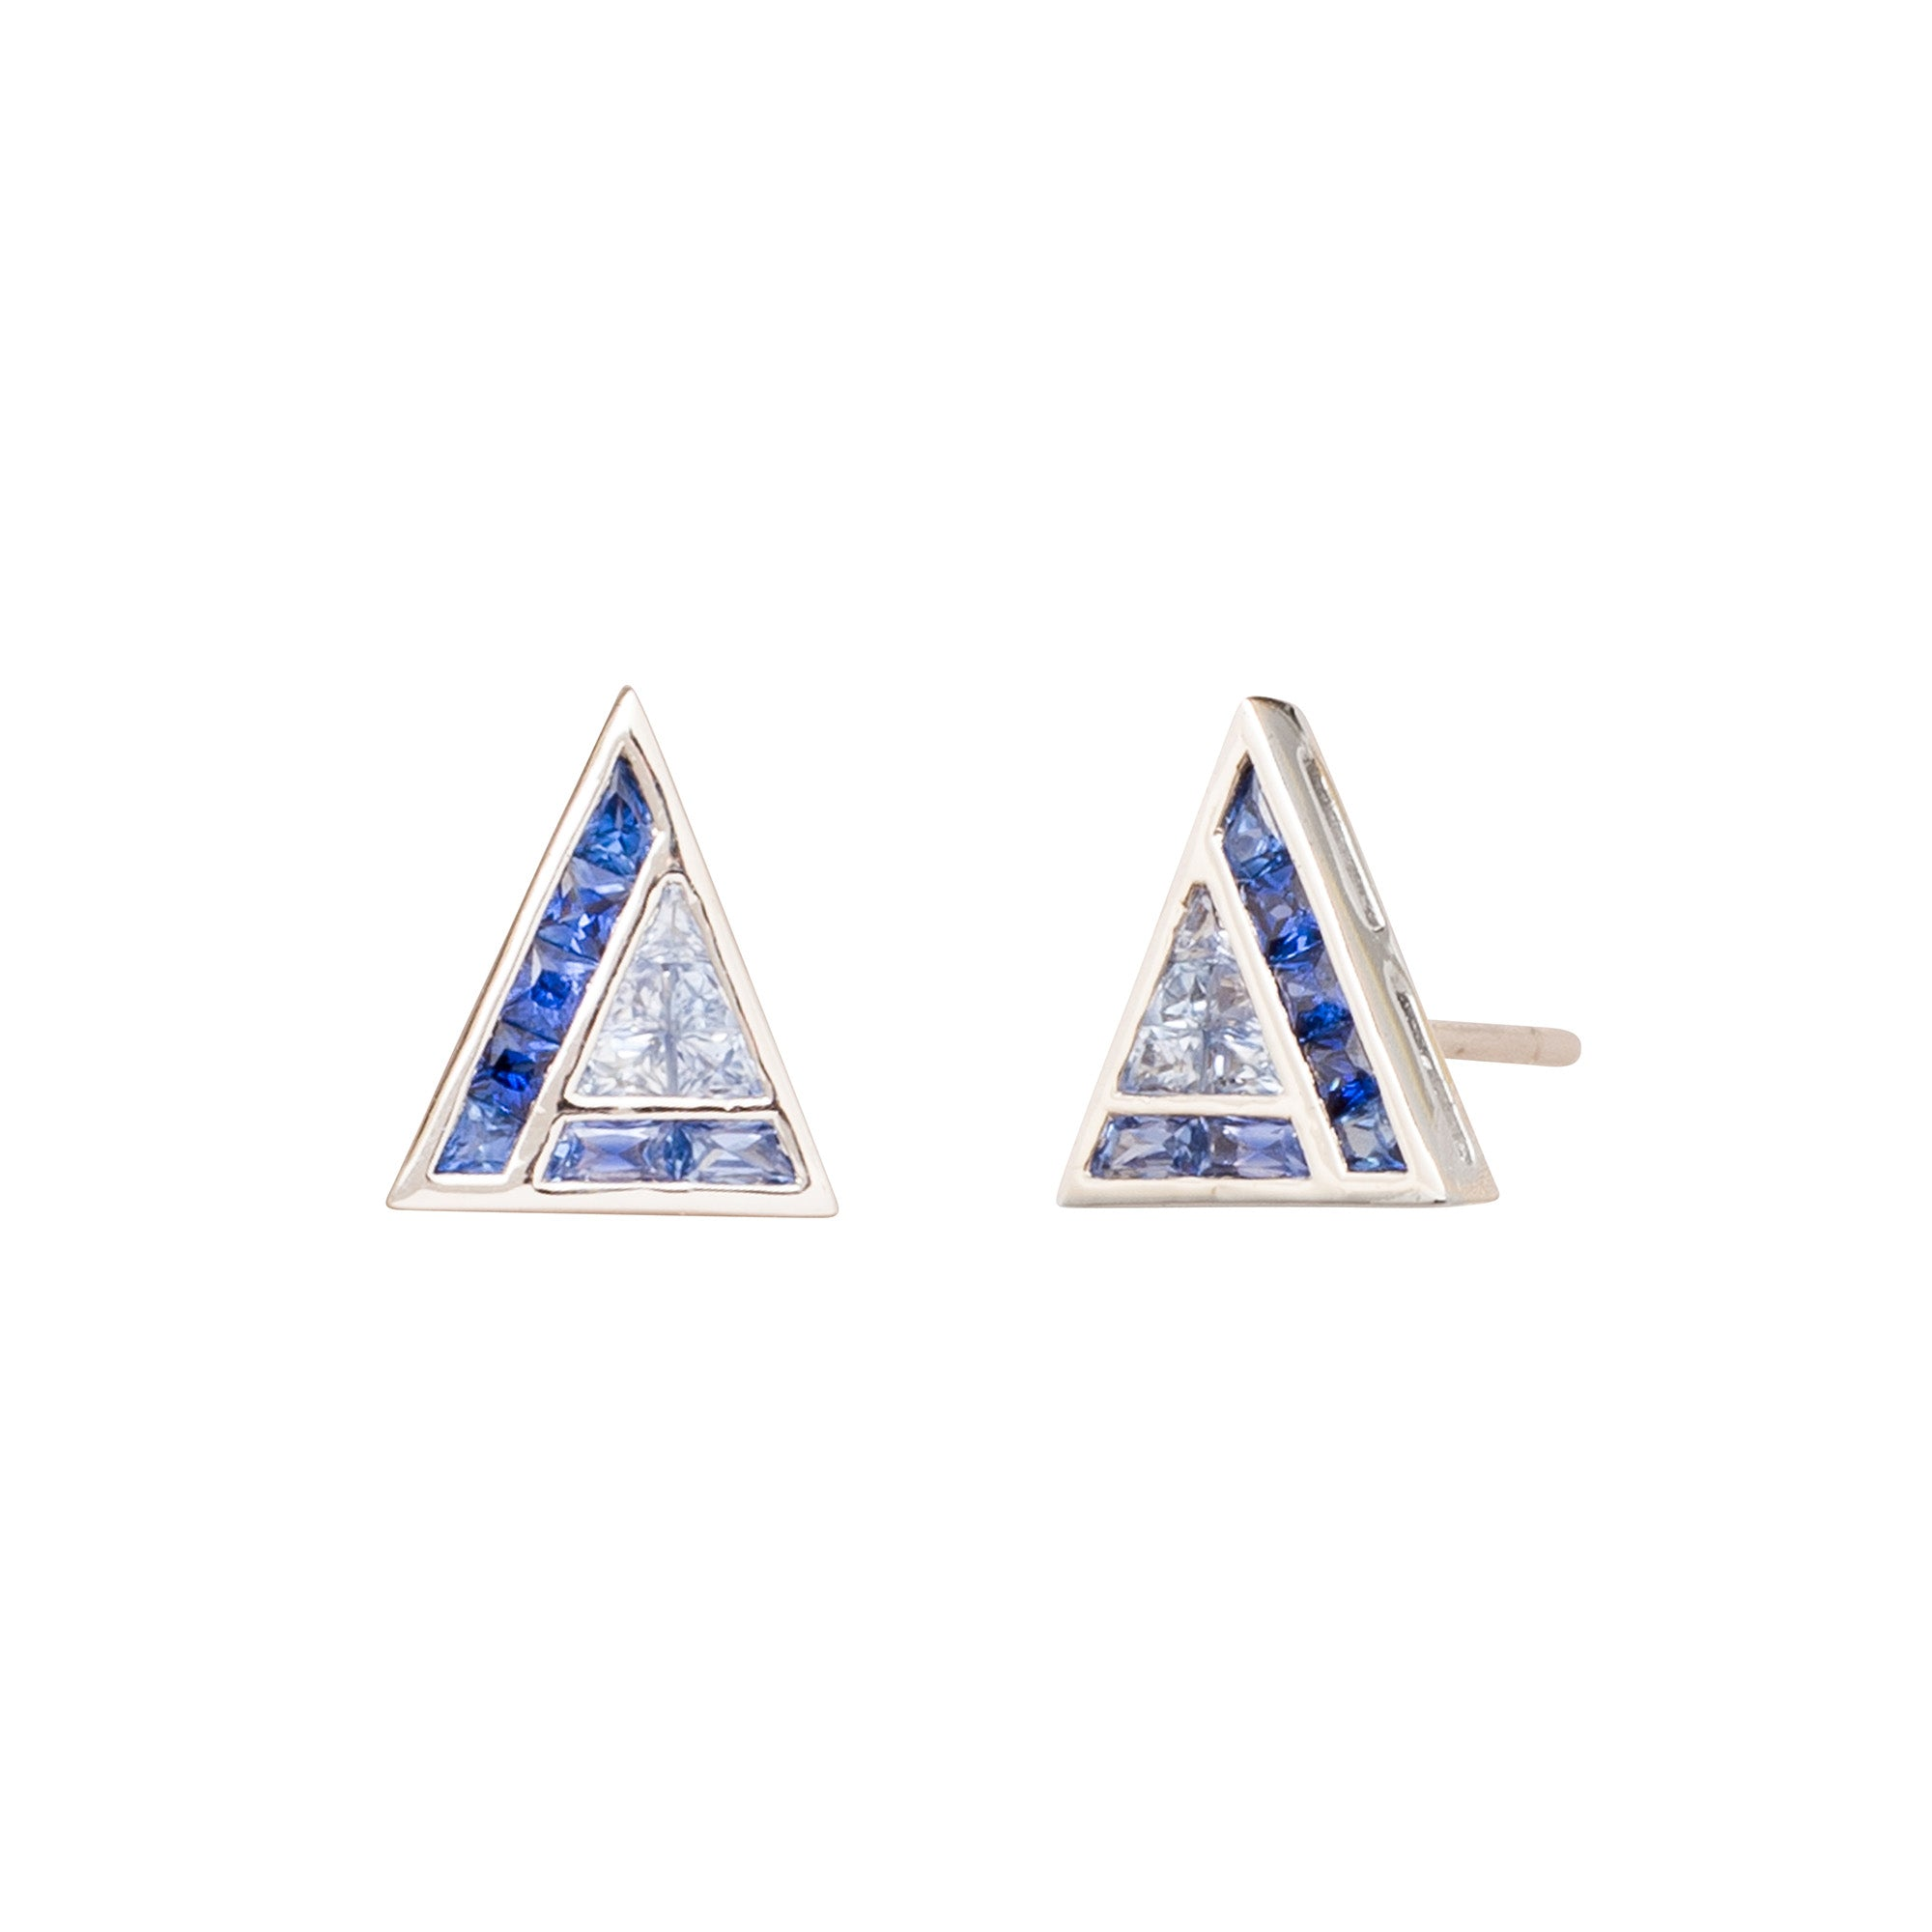 Blue Sapphire Triangle Stud by Kavant & Sharart for Broken English Jewelry